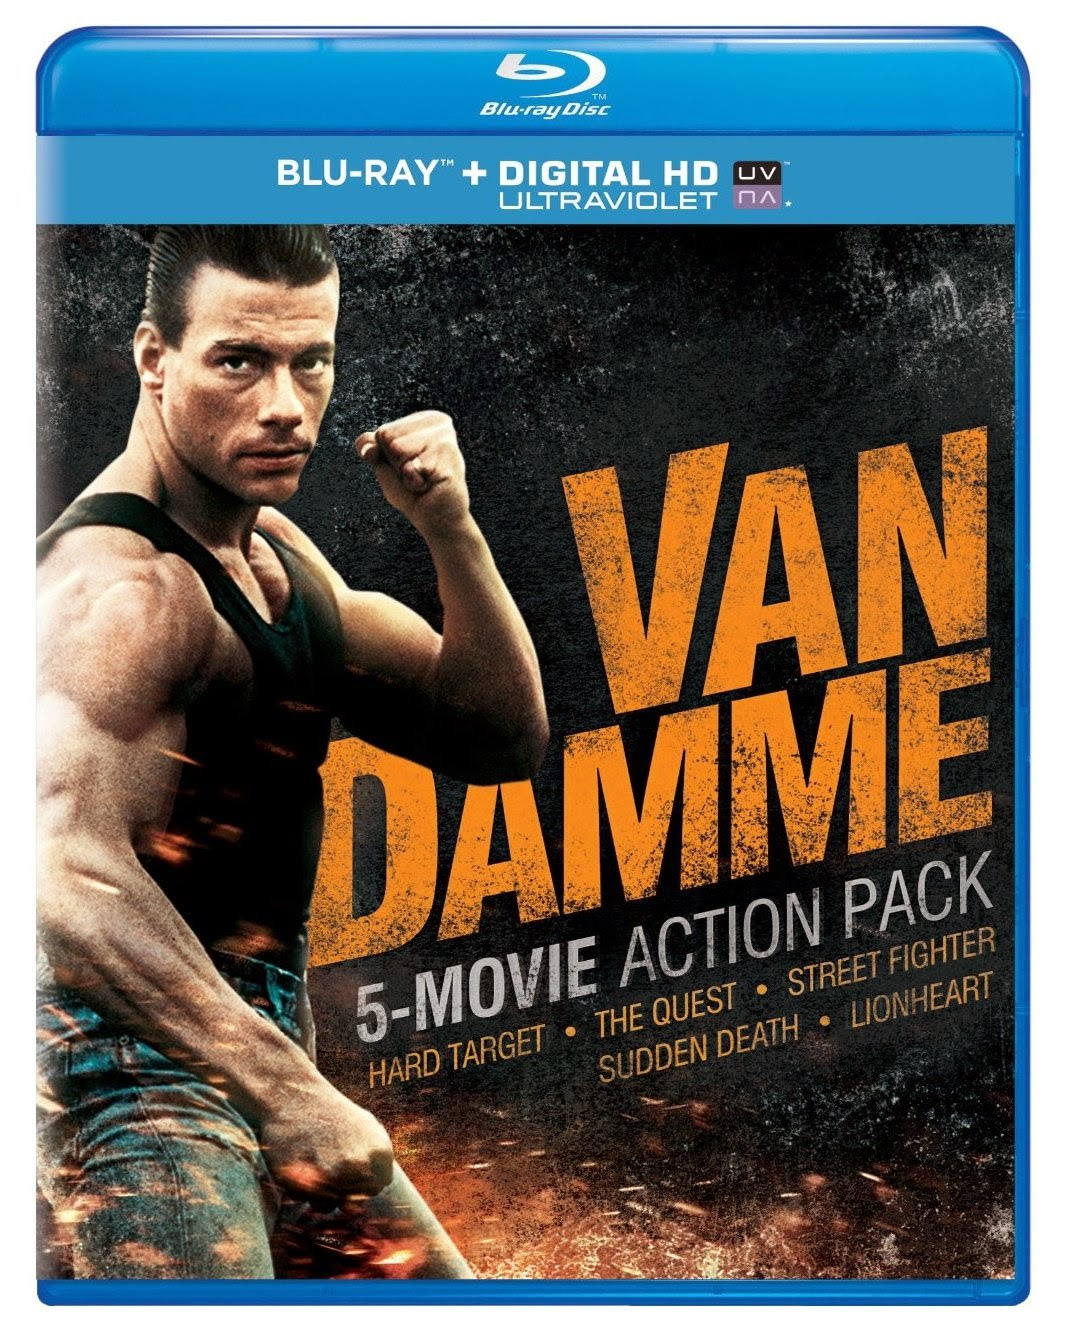 Musica y Peliculas : Van Damme 5 Movie Action Pack (Blu ray